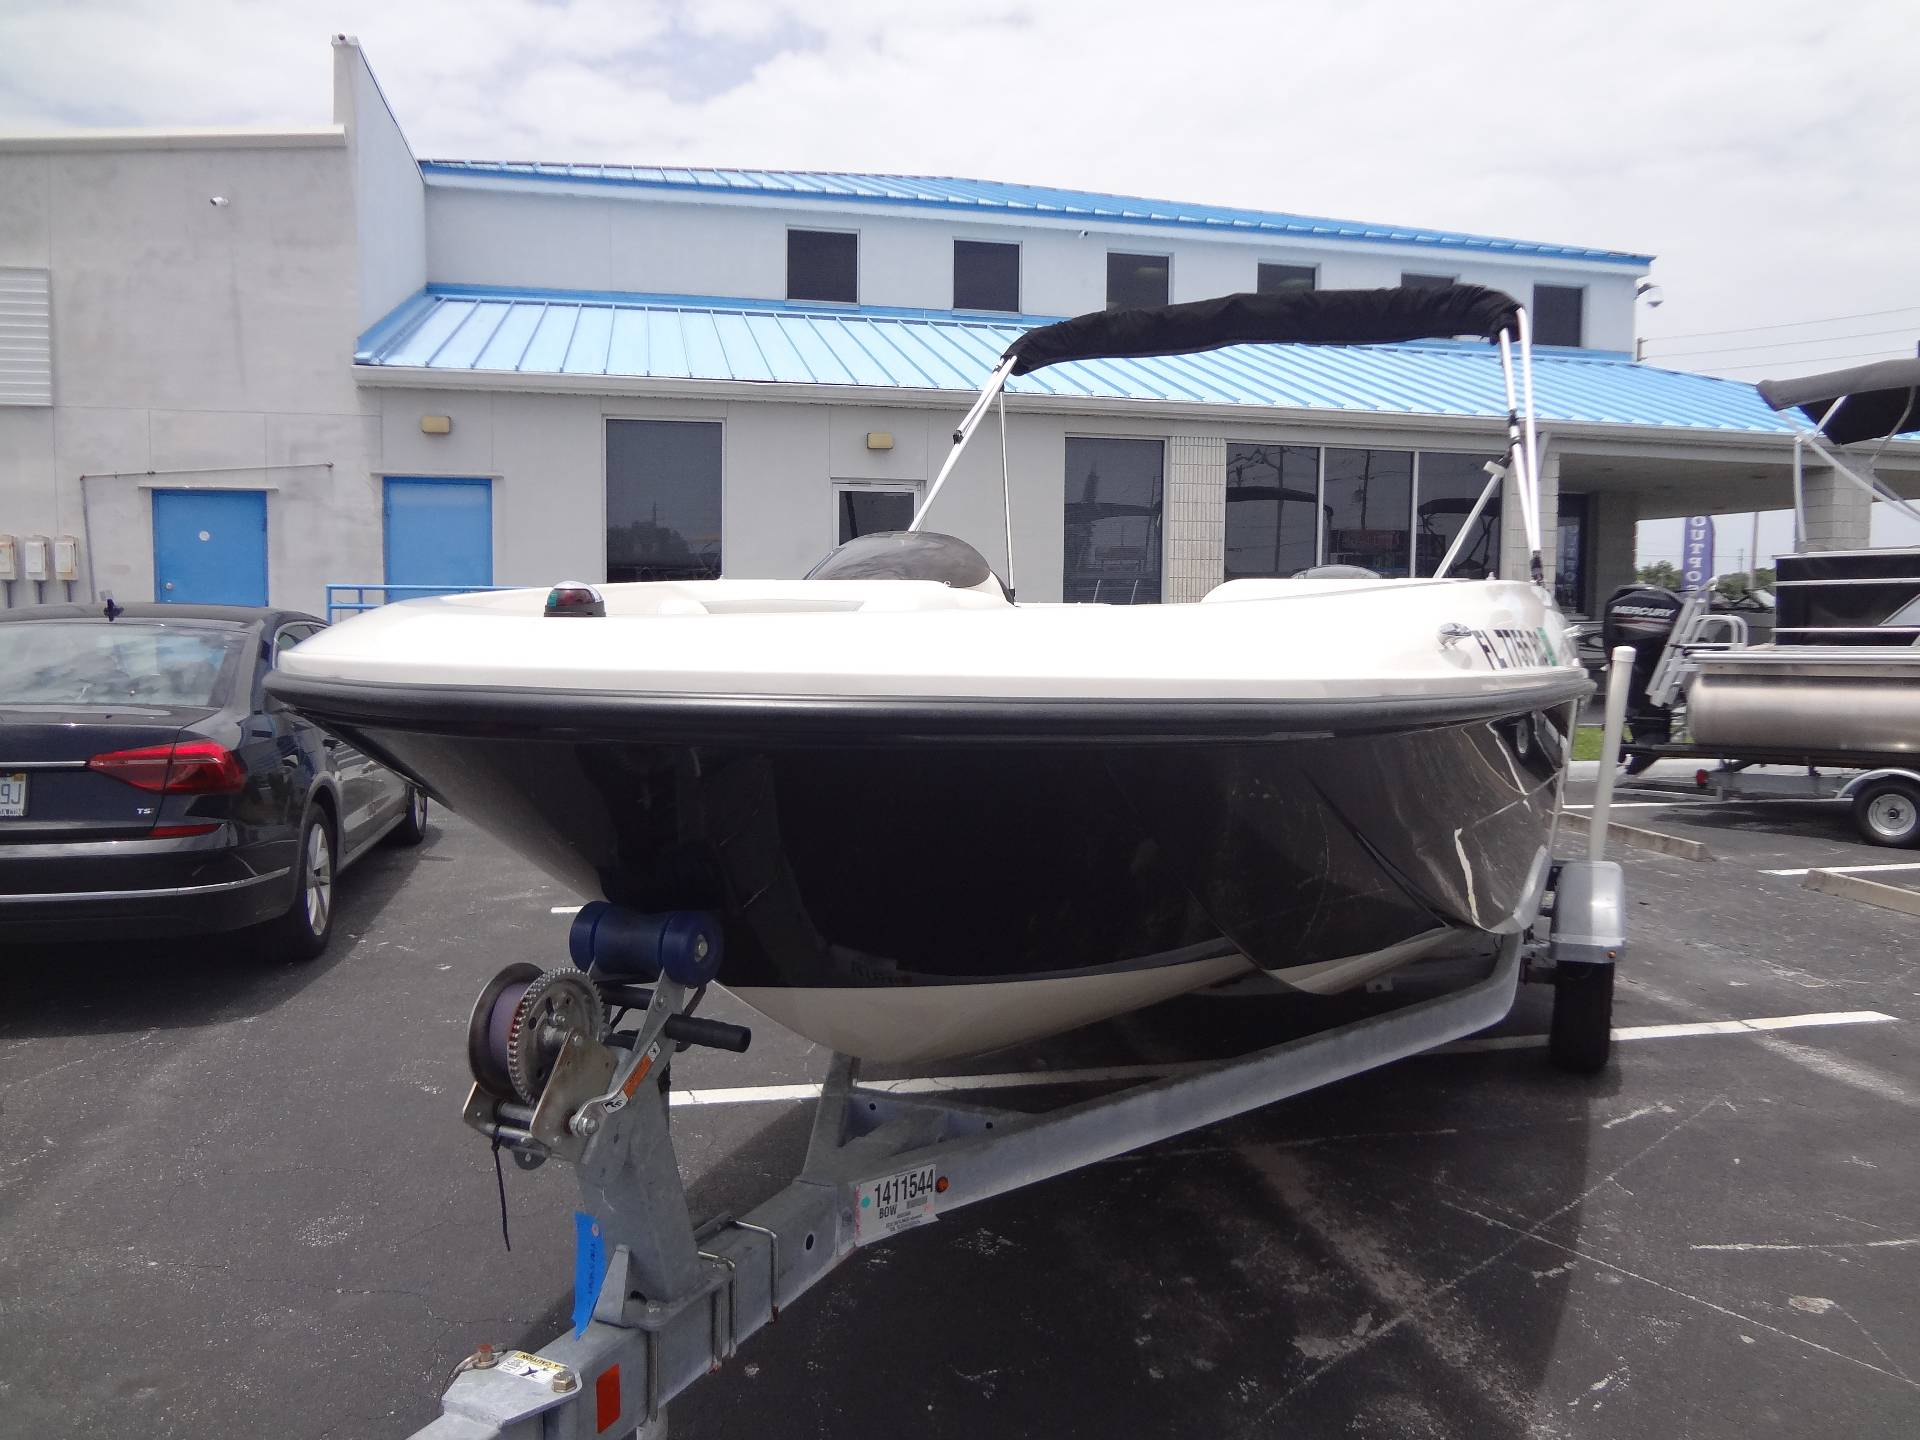 2016 Bayliner(Private) ELEMENT XL in Holiday, Florida - Photo 4